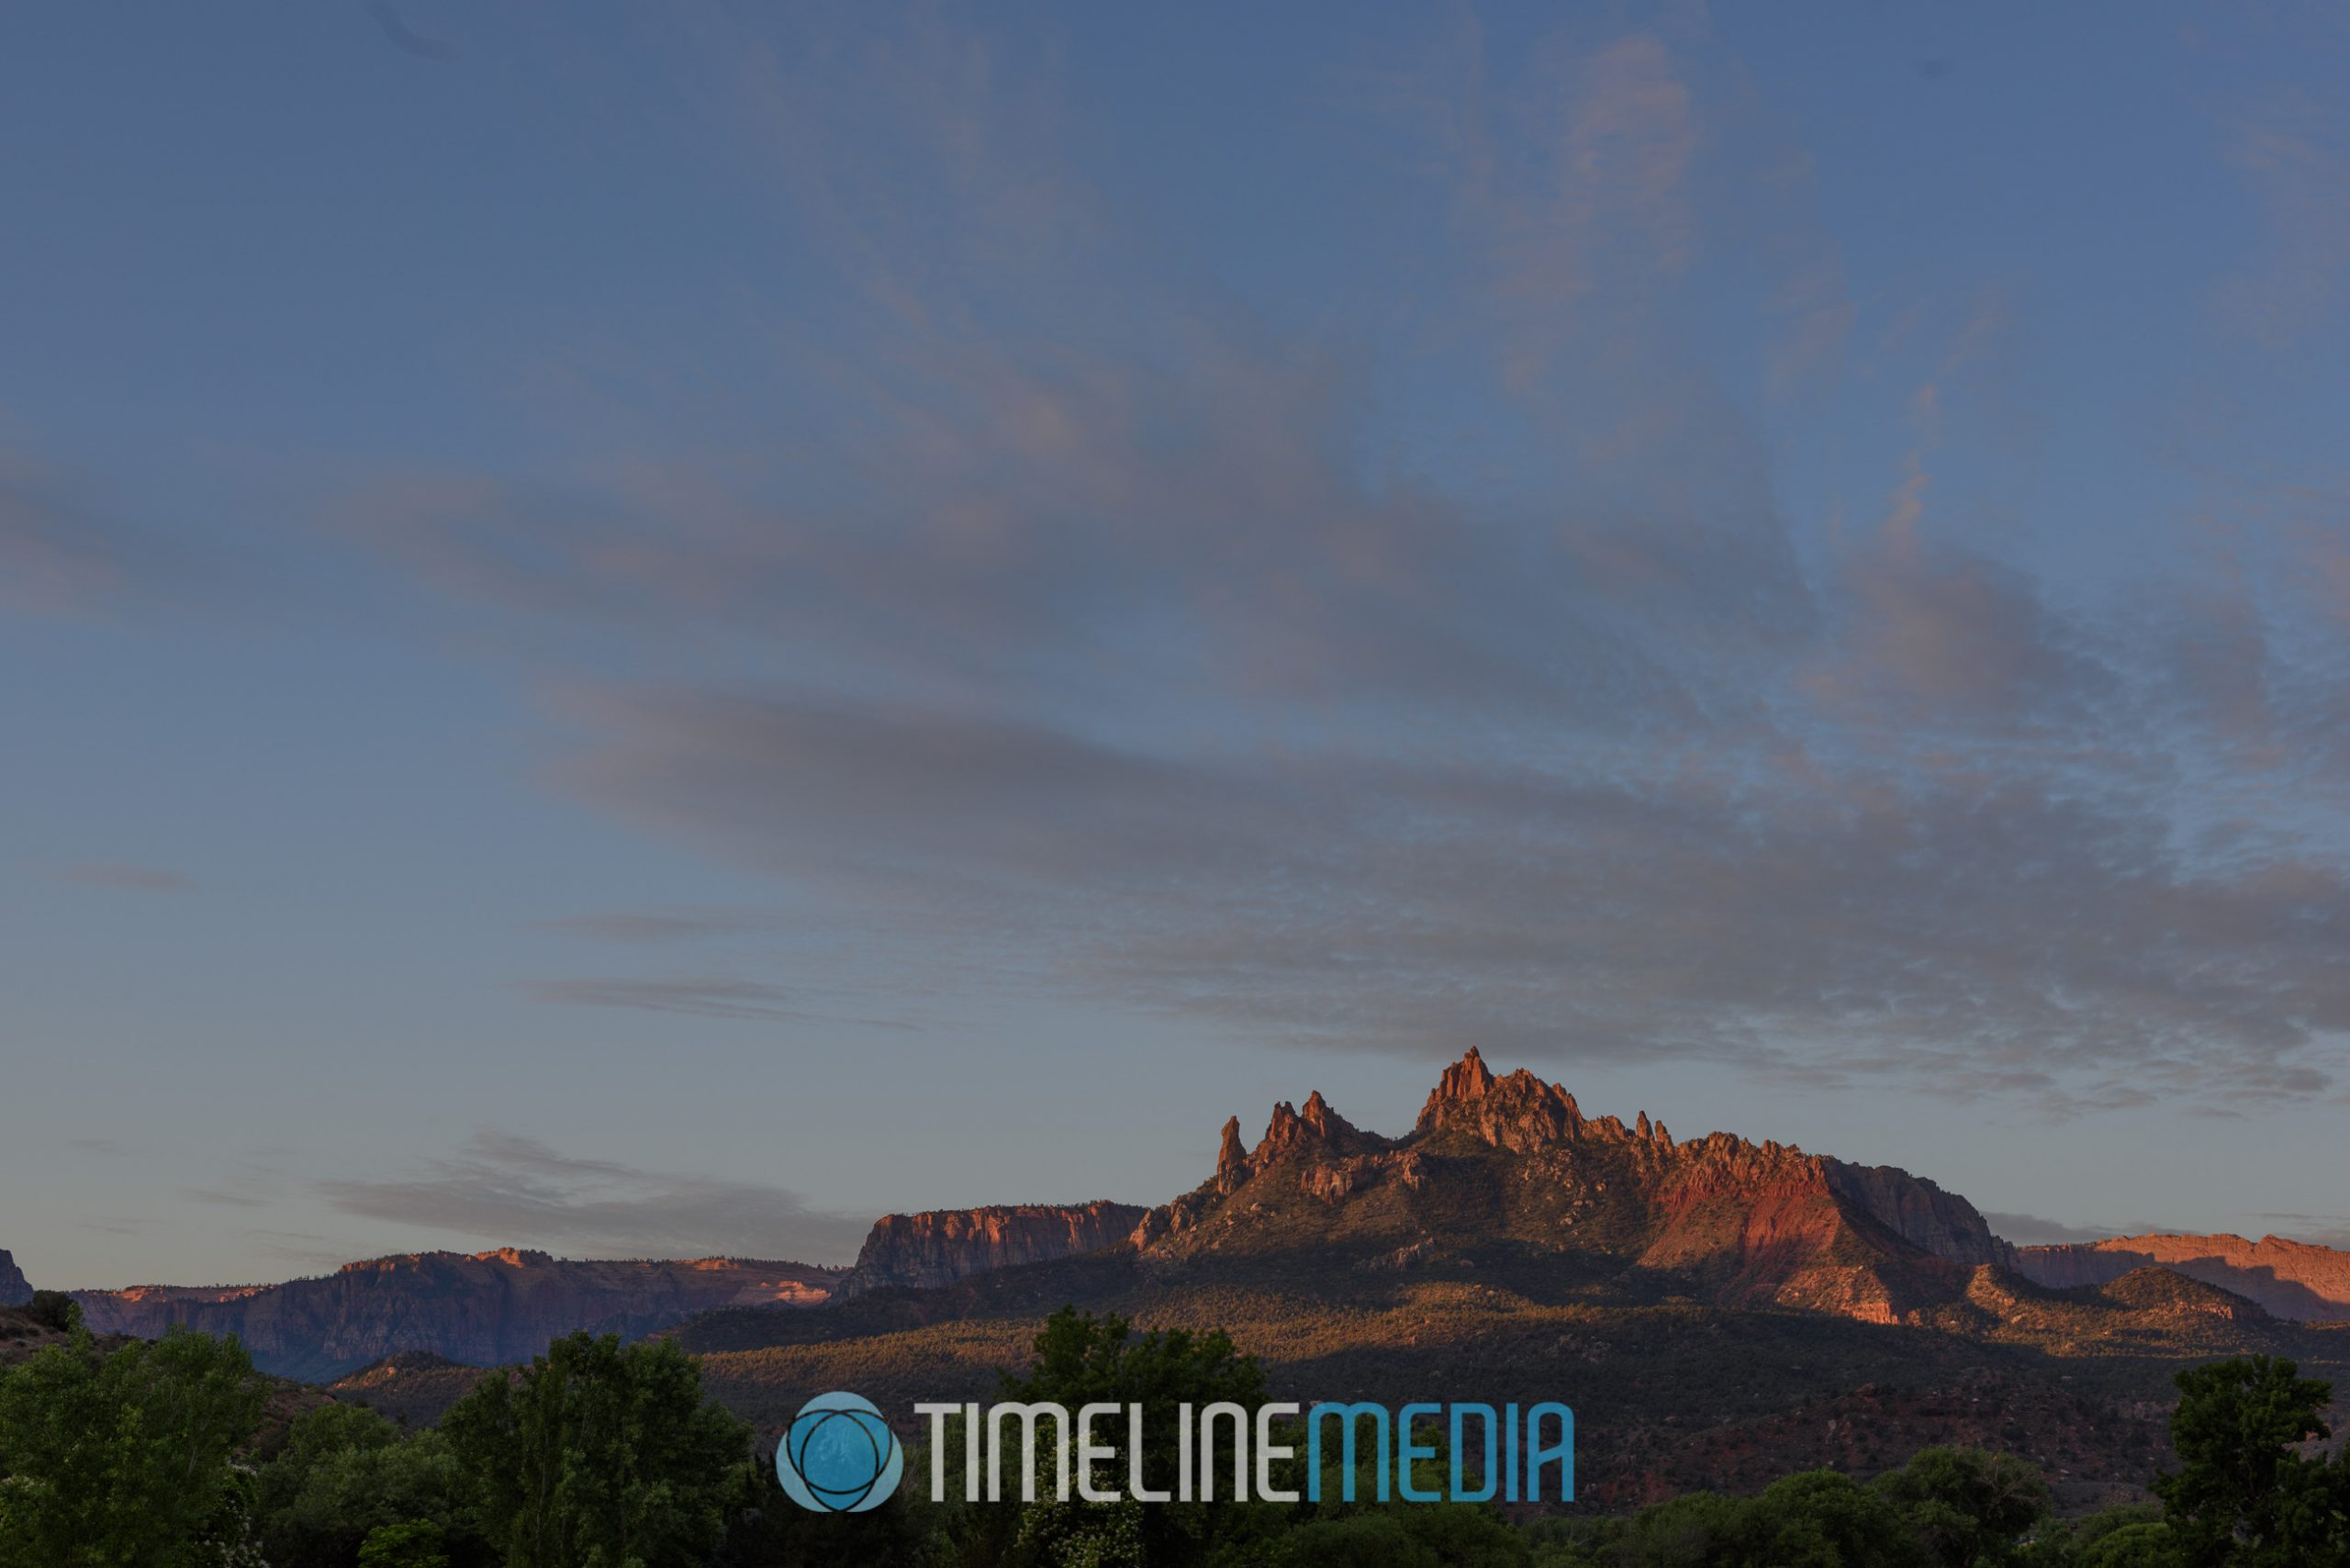 Early morning light on mountain top in Zion National Park ©TimeLine Media